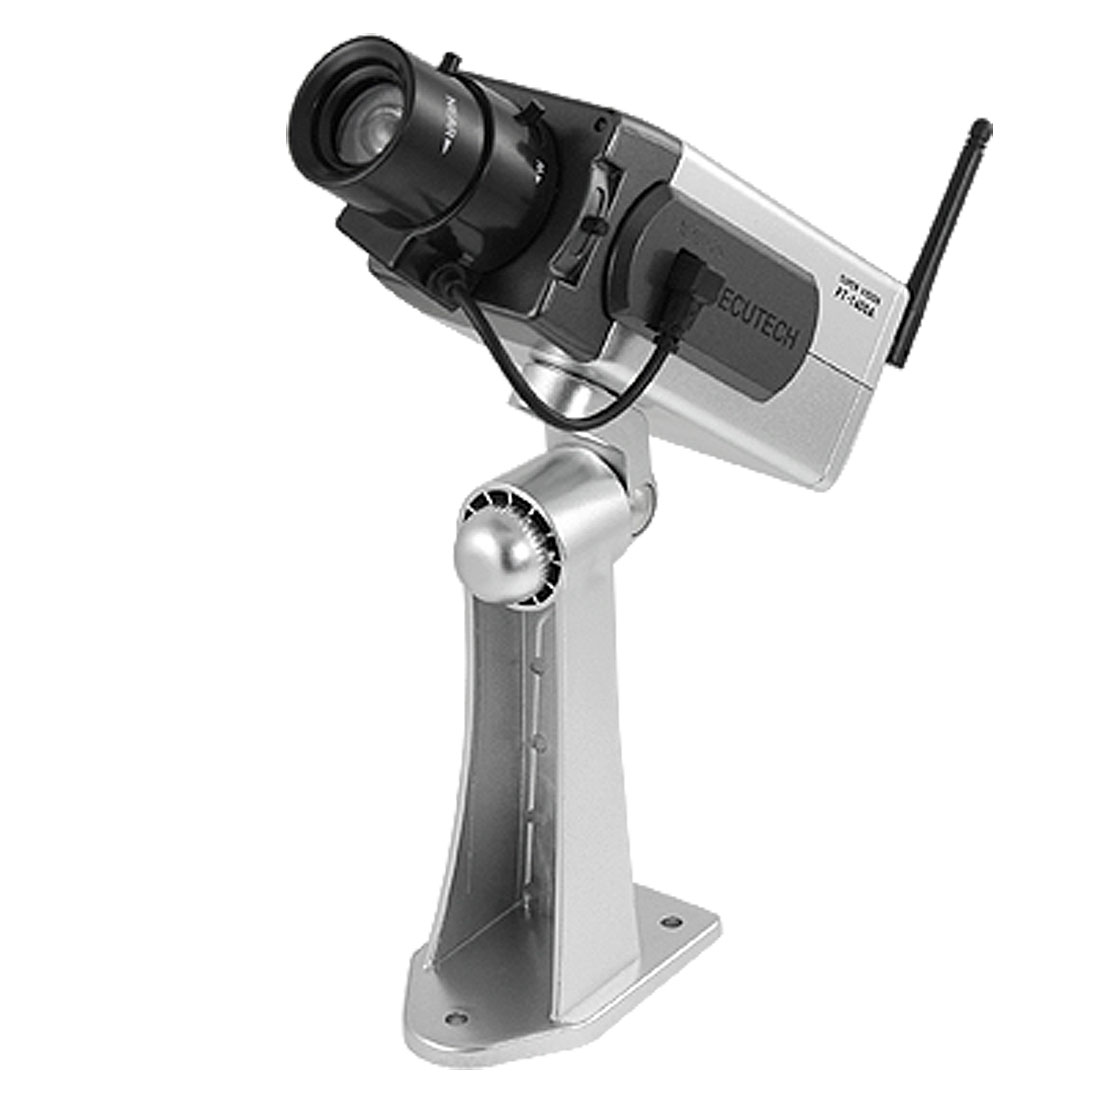 Plastic Shell Fake Dummy Surveillance Security Camera